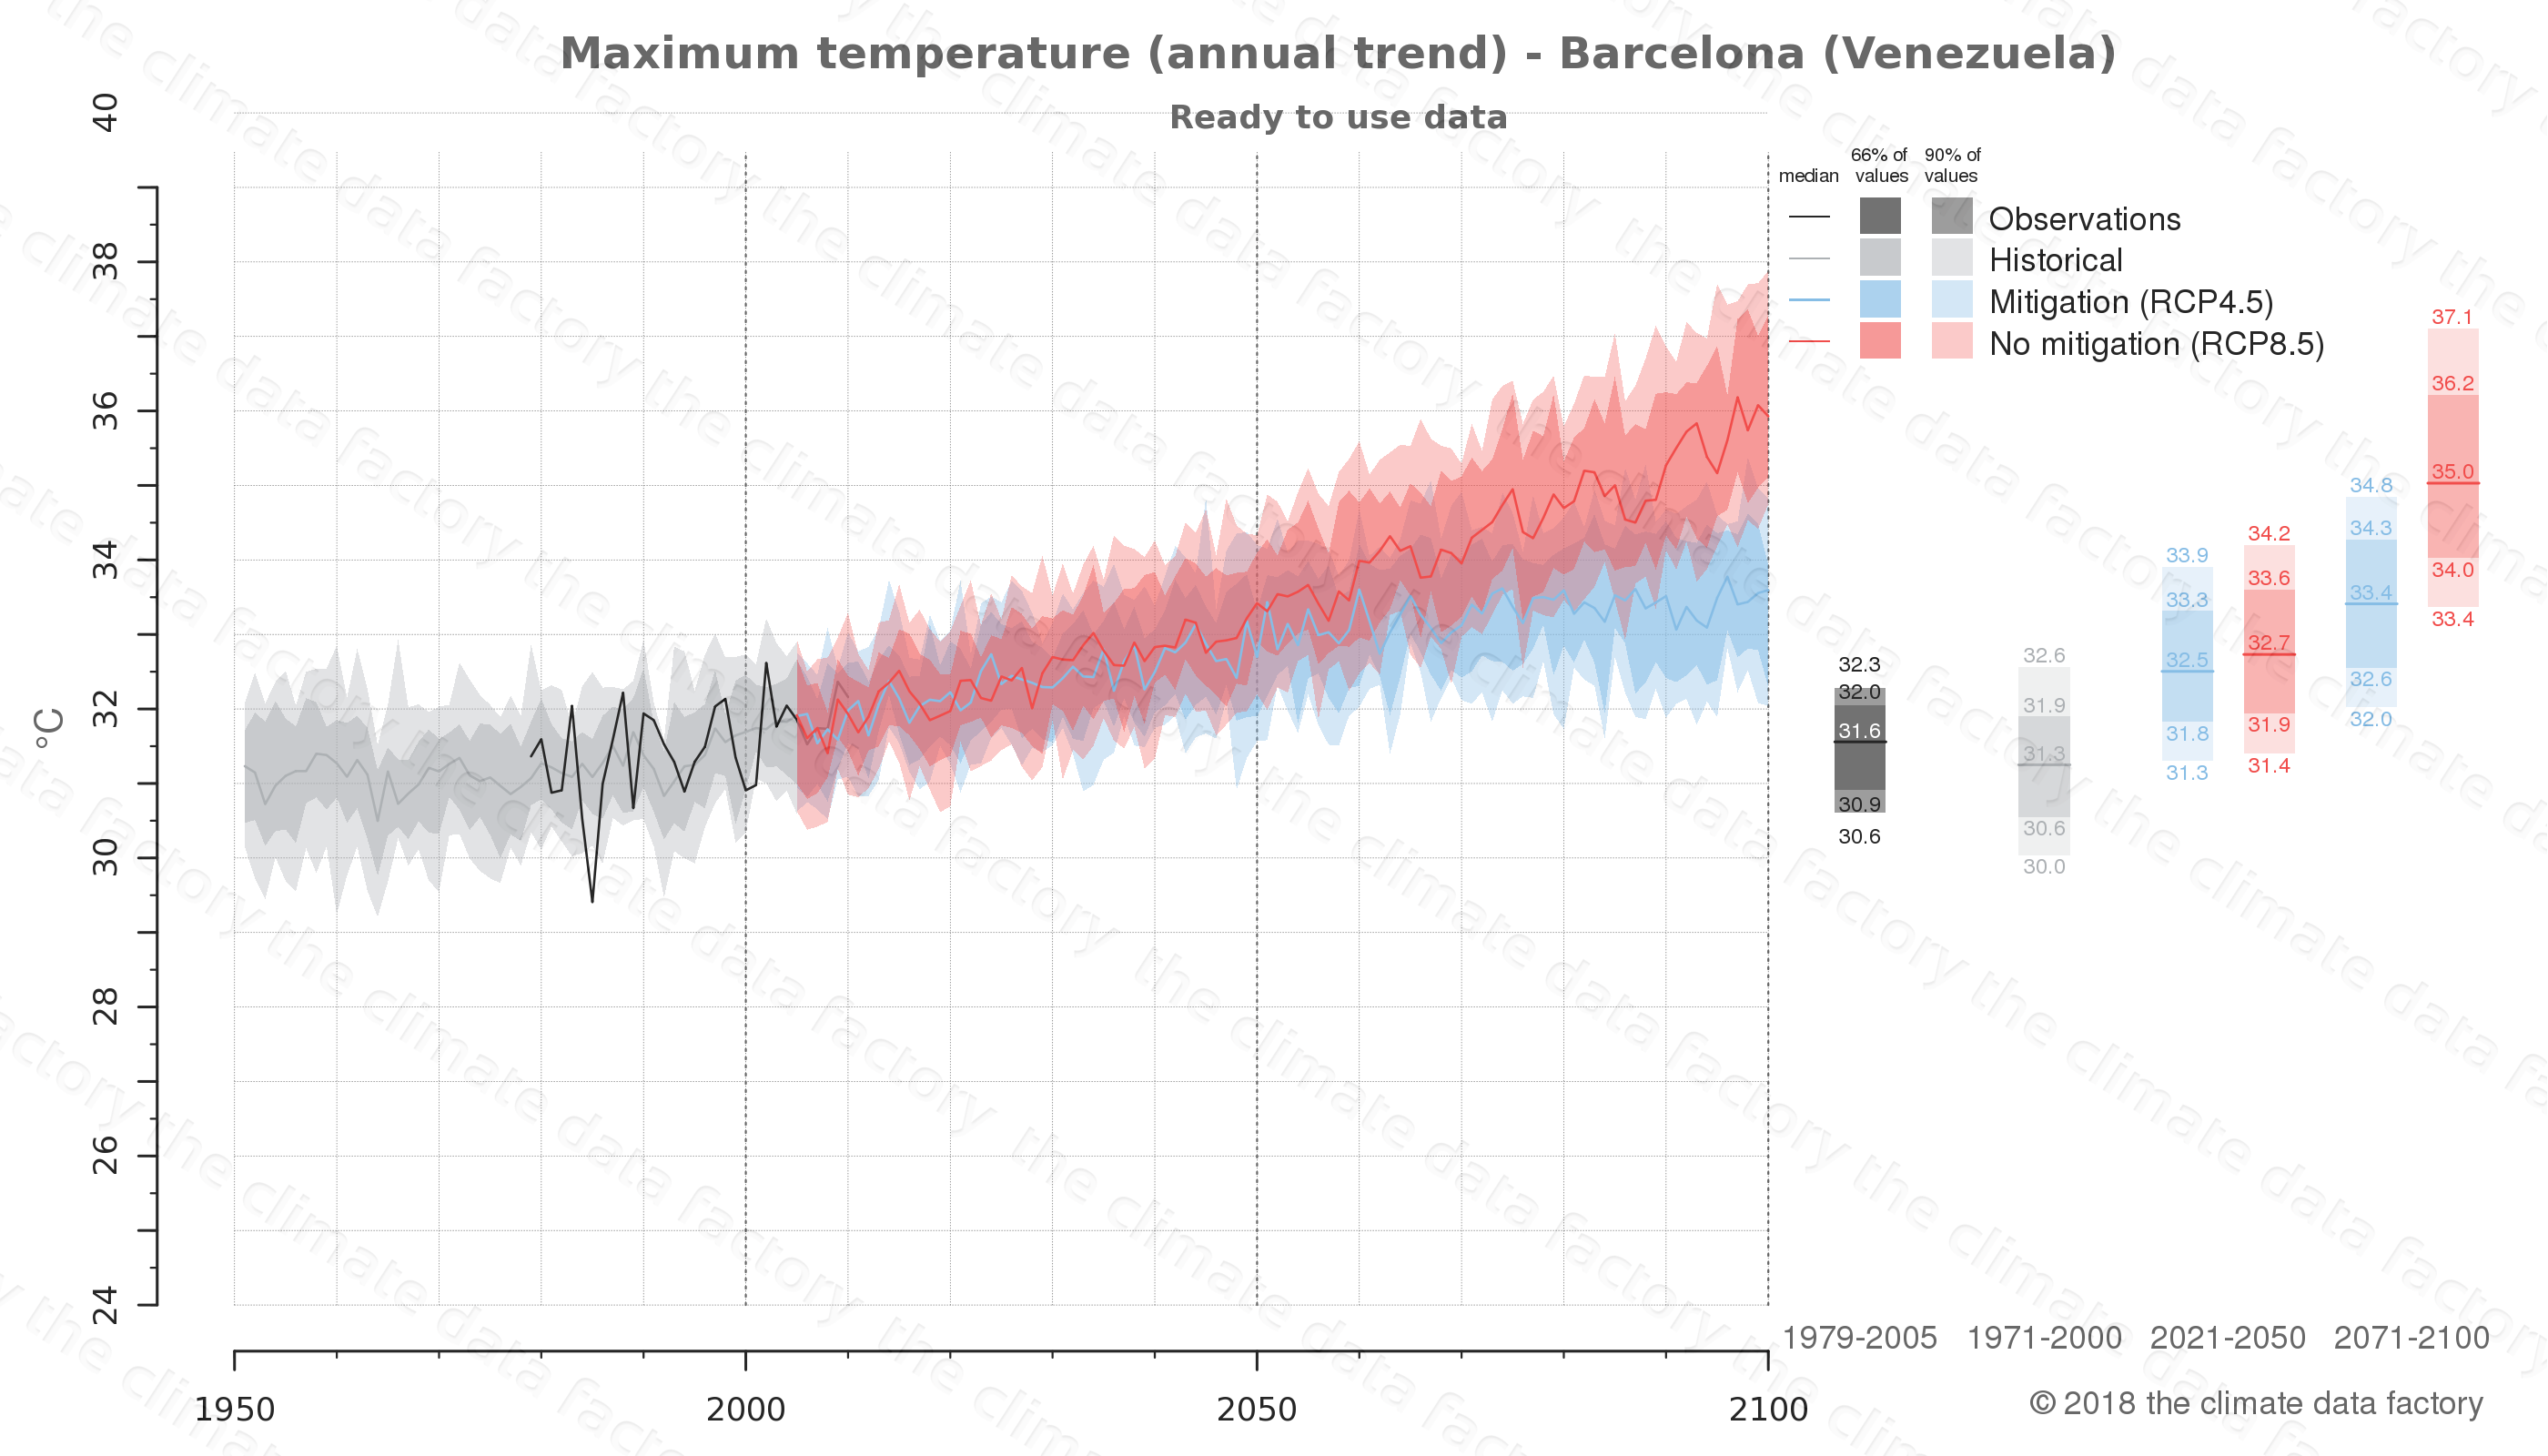 climate change data policy adaptation climate graph city data maximum-temperature barcelona venezuela